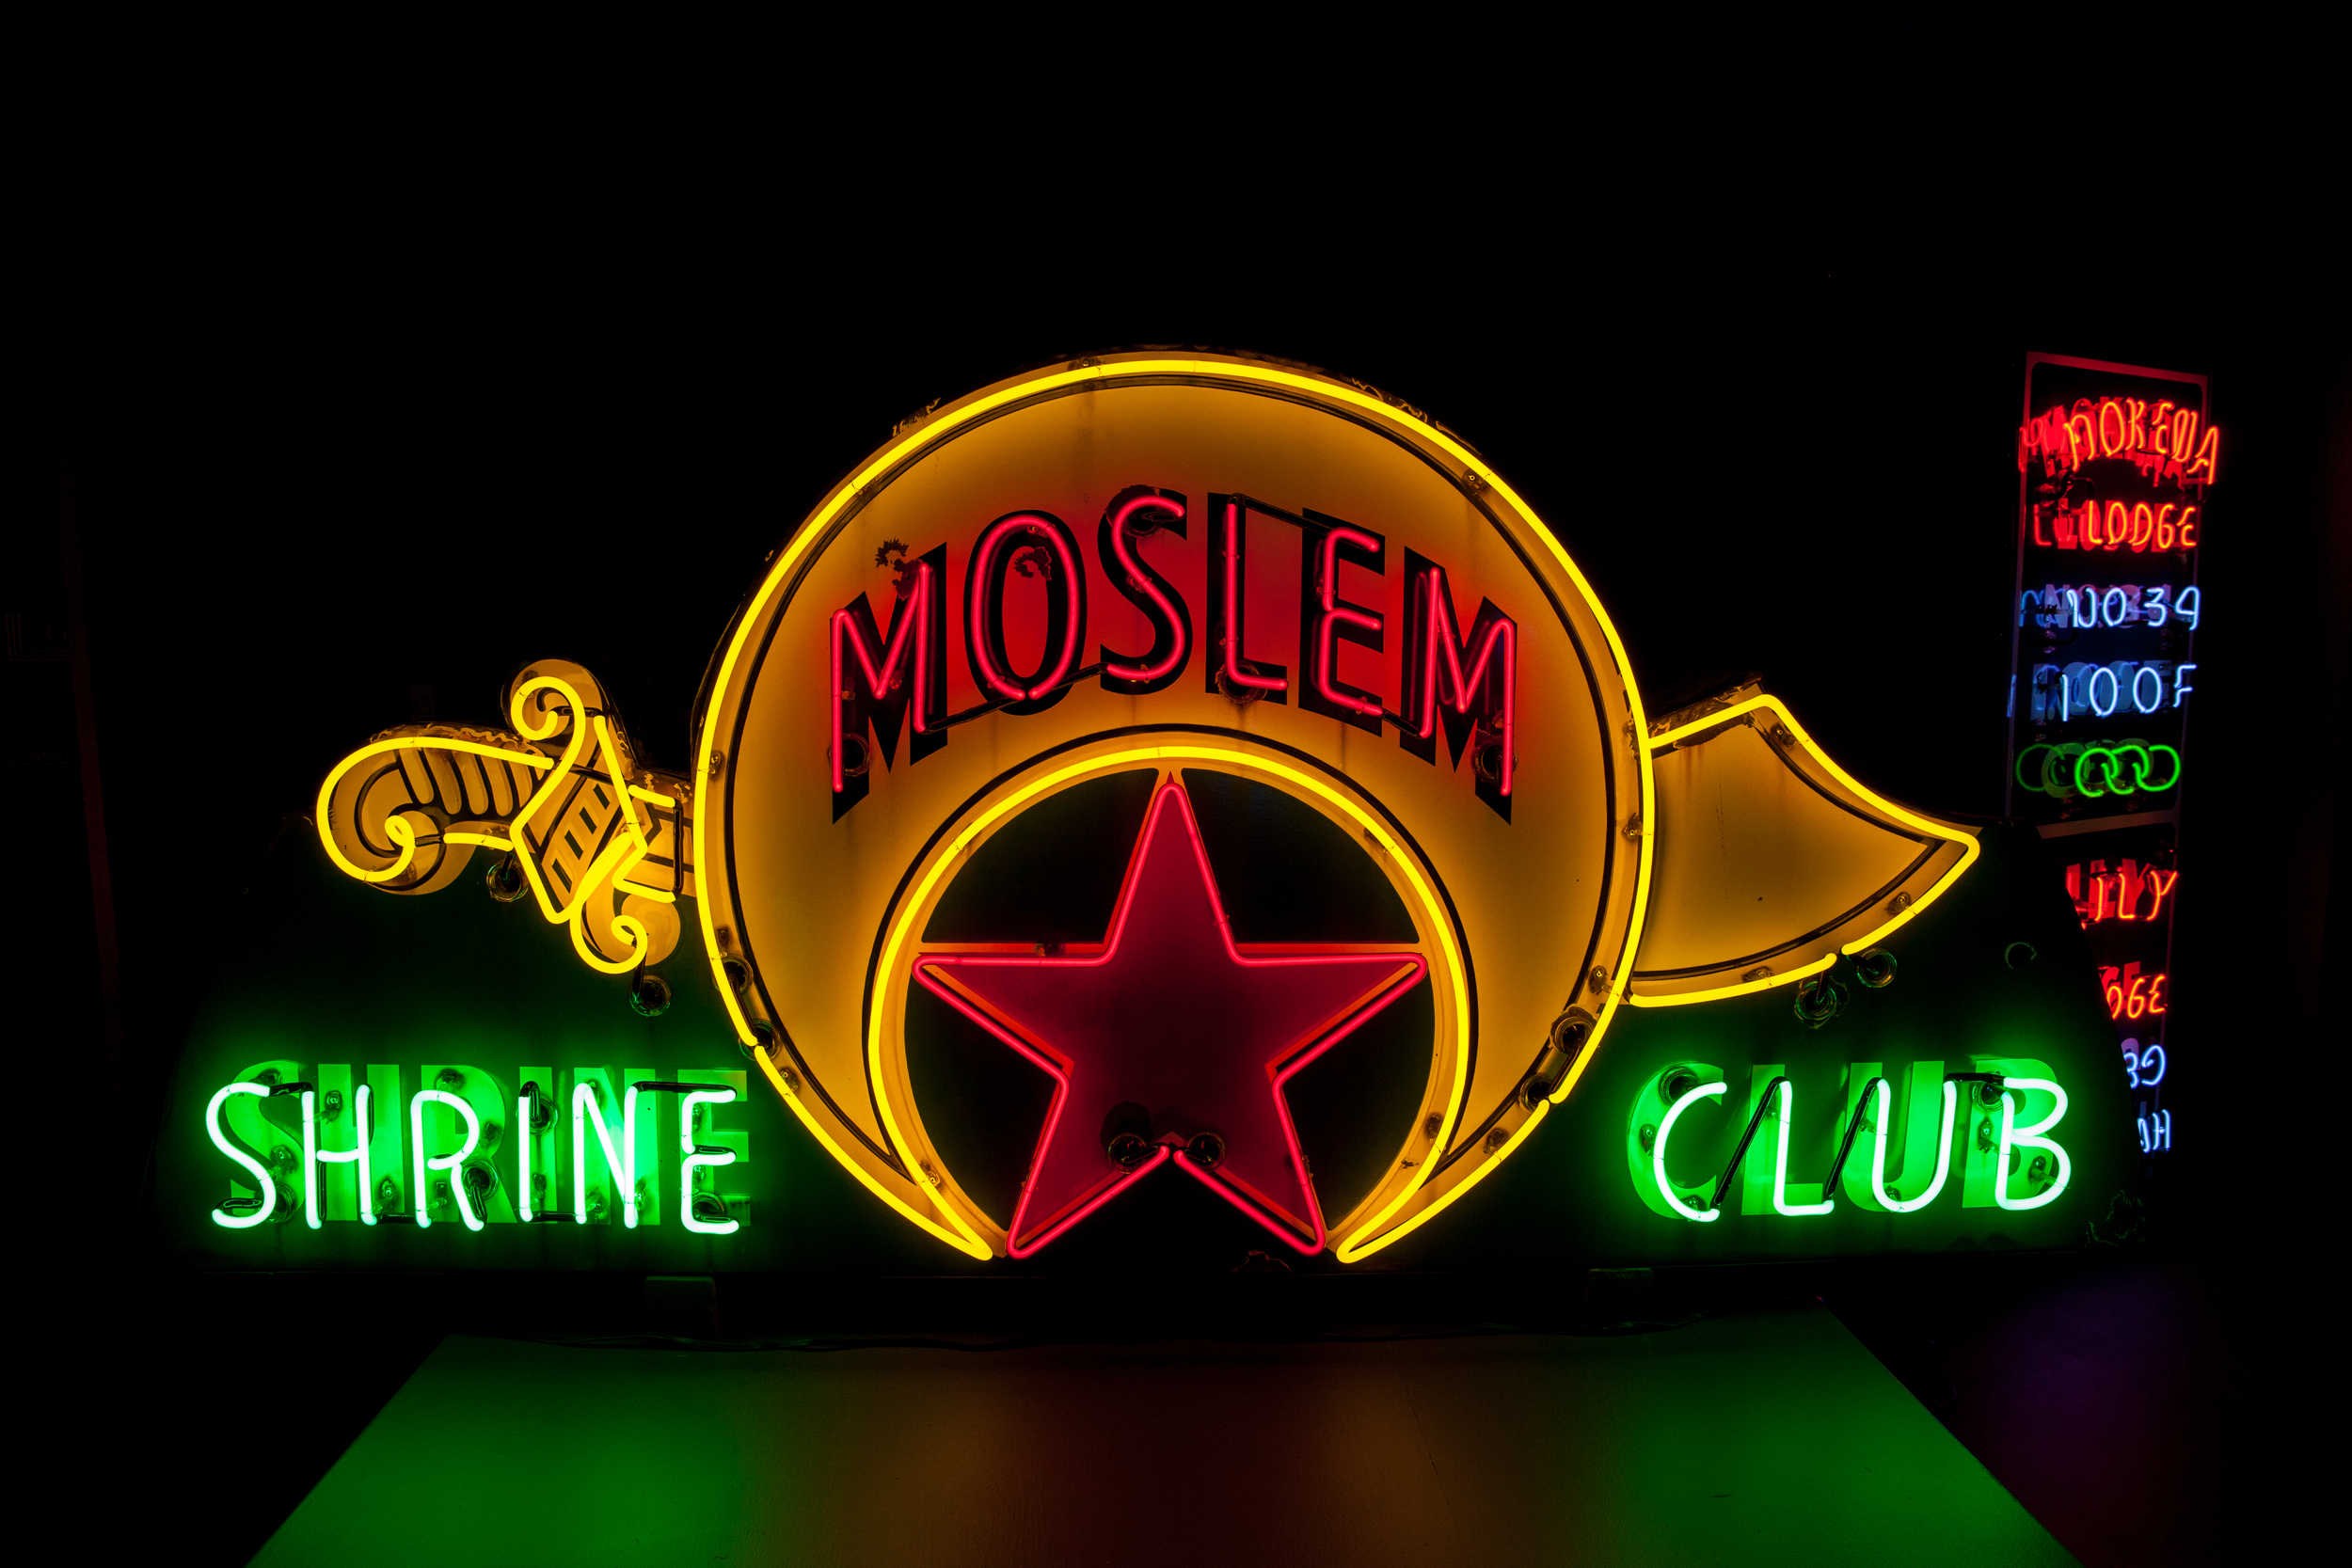 Molsem Shrine Club Neon and Porcelain Enamel Sign.